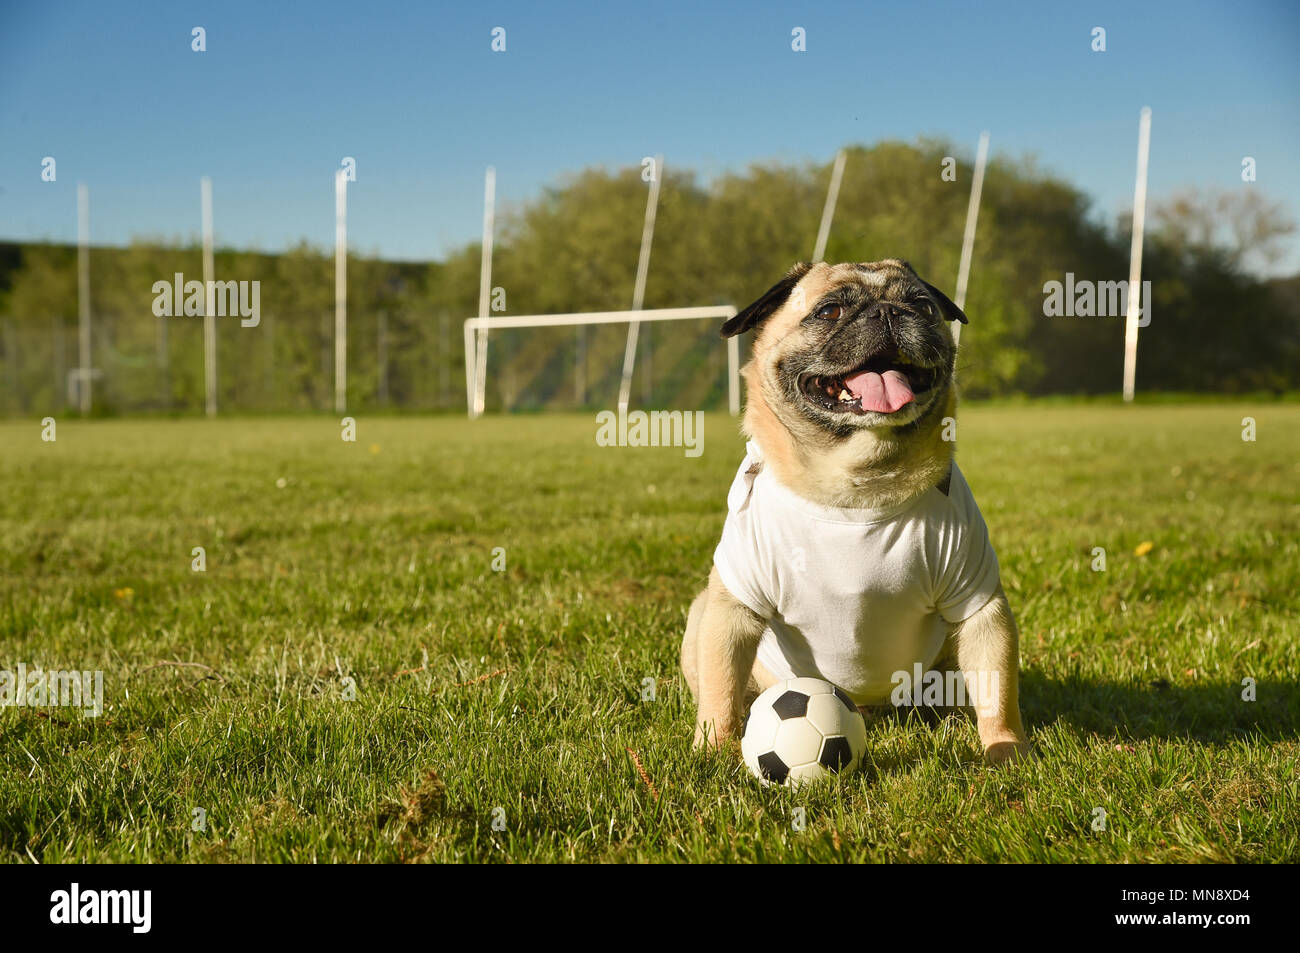 Little dog is sitting on the football field. The pug wears a T Shirt with copy space. He is attentive and guards a small football. It's a sunny day on - Stock Image